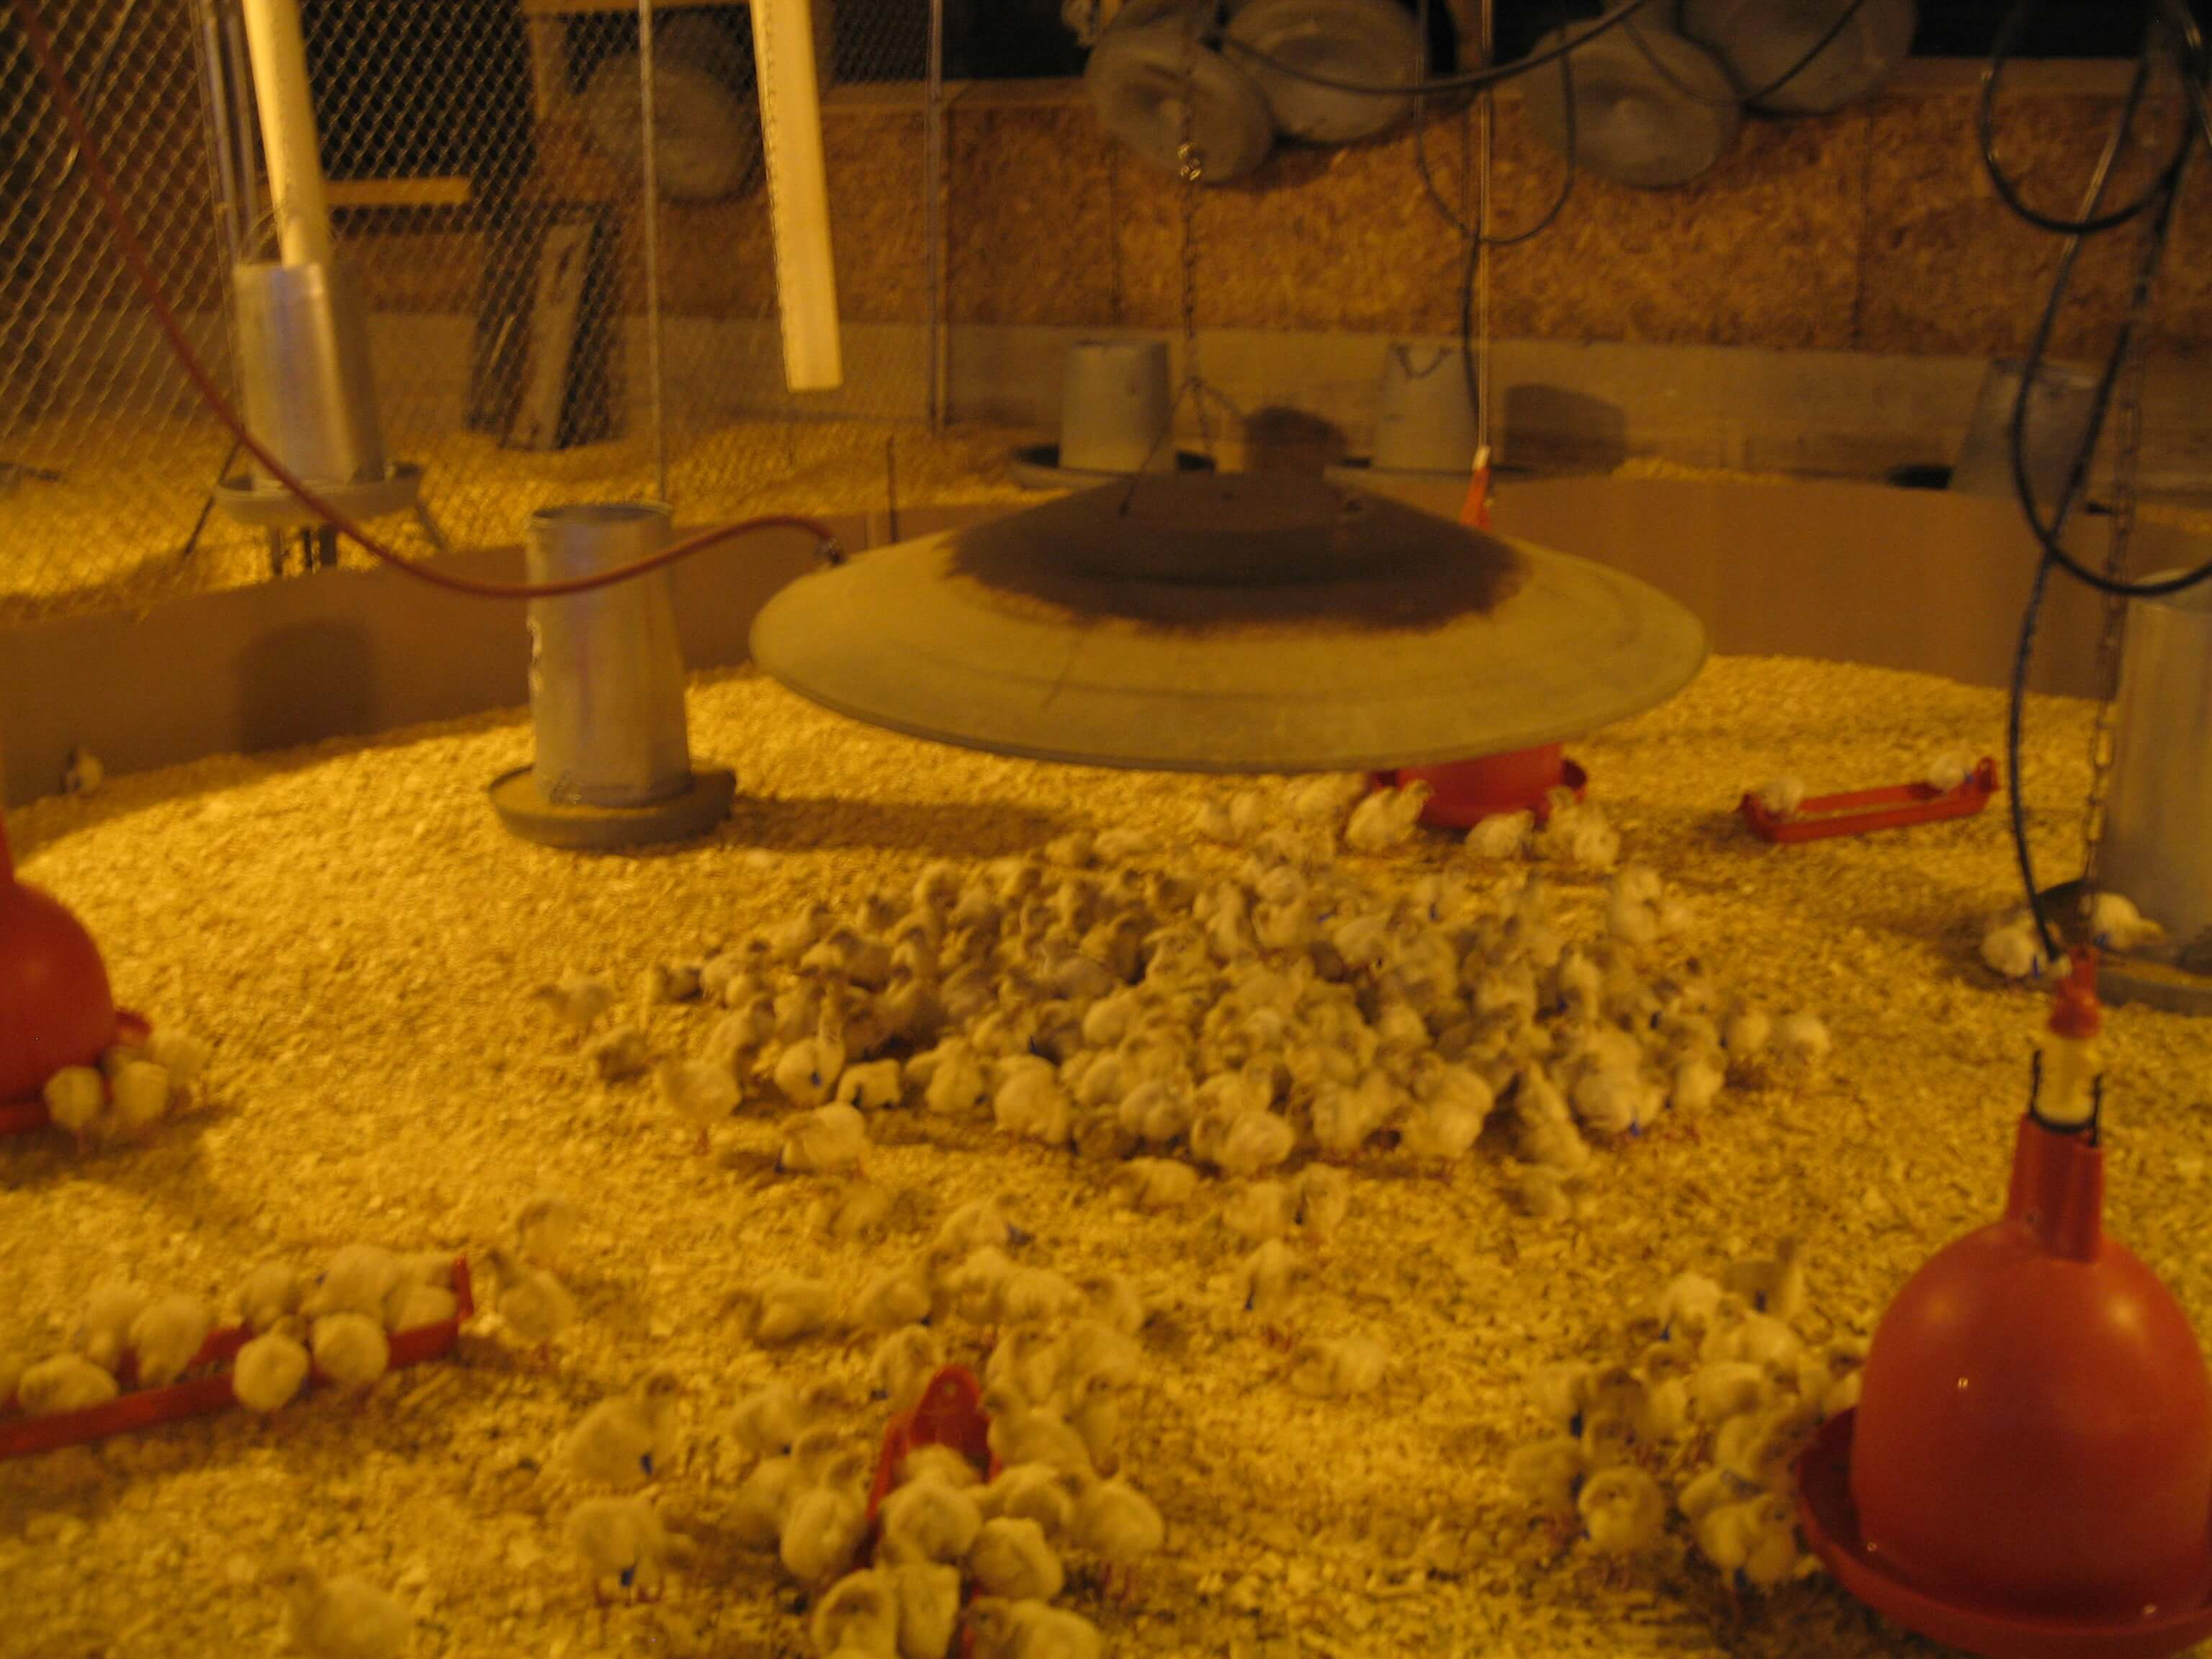 Baby chicks under heat lamp